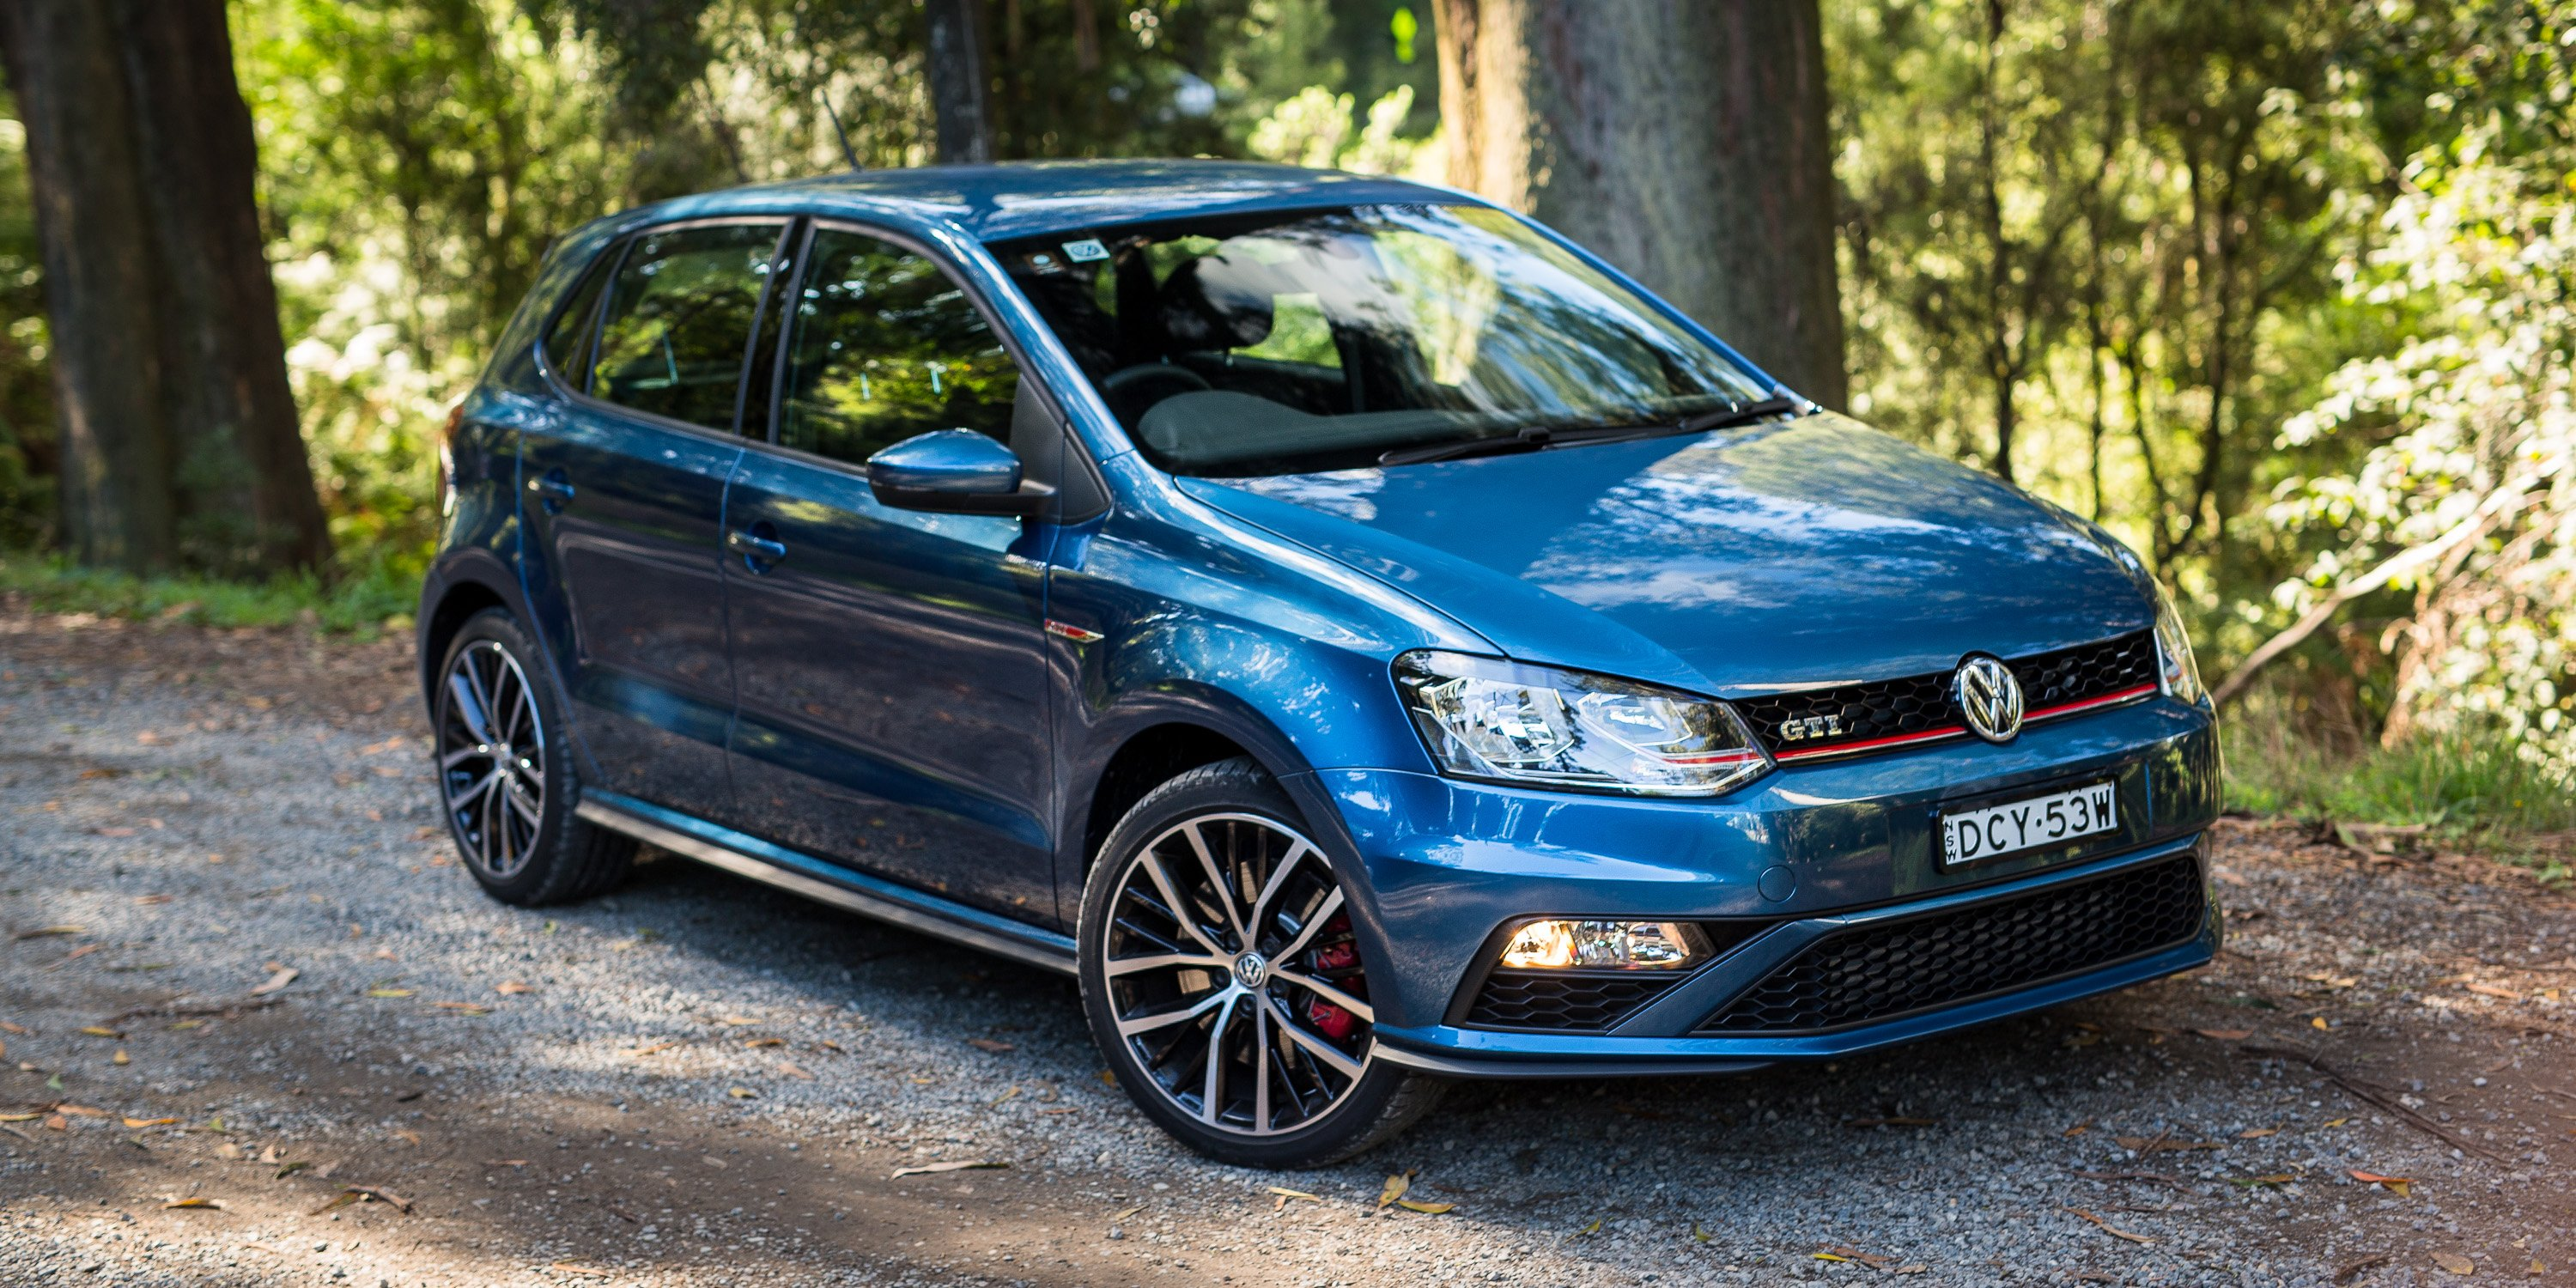 2016 Volkswagen Polo Gti Review Photos Caradvice